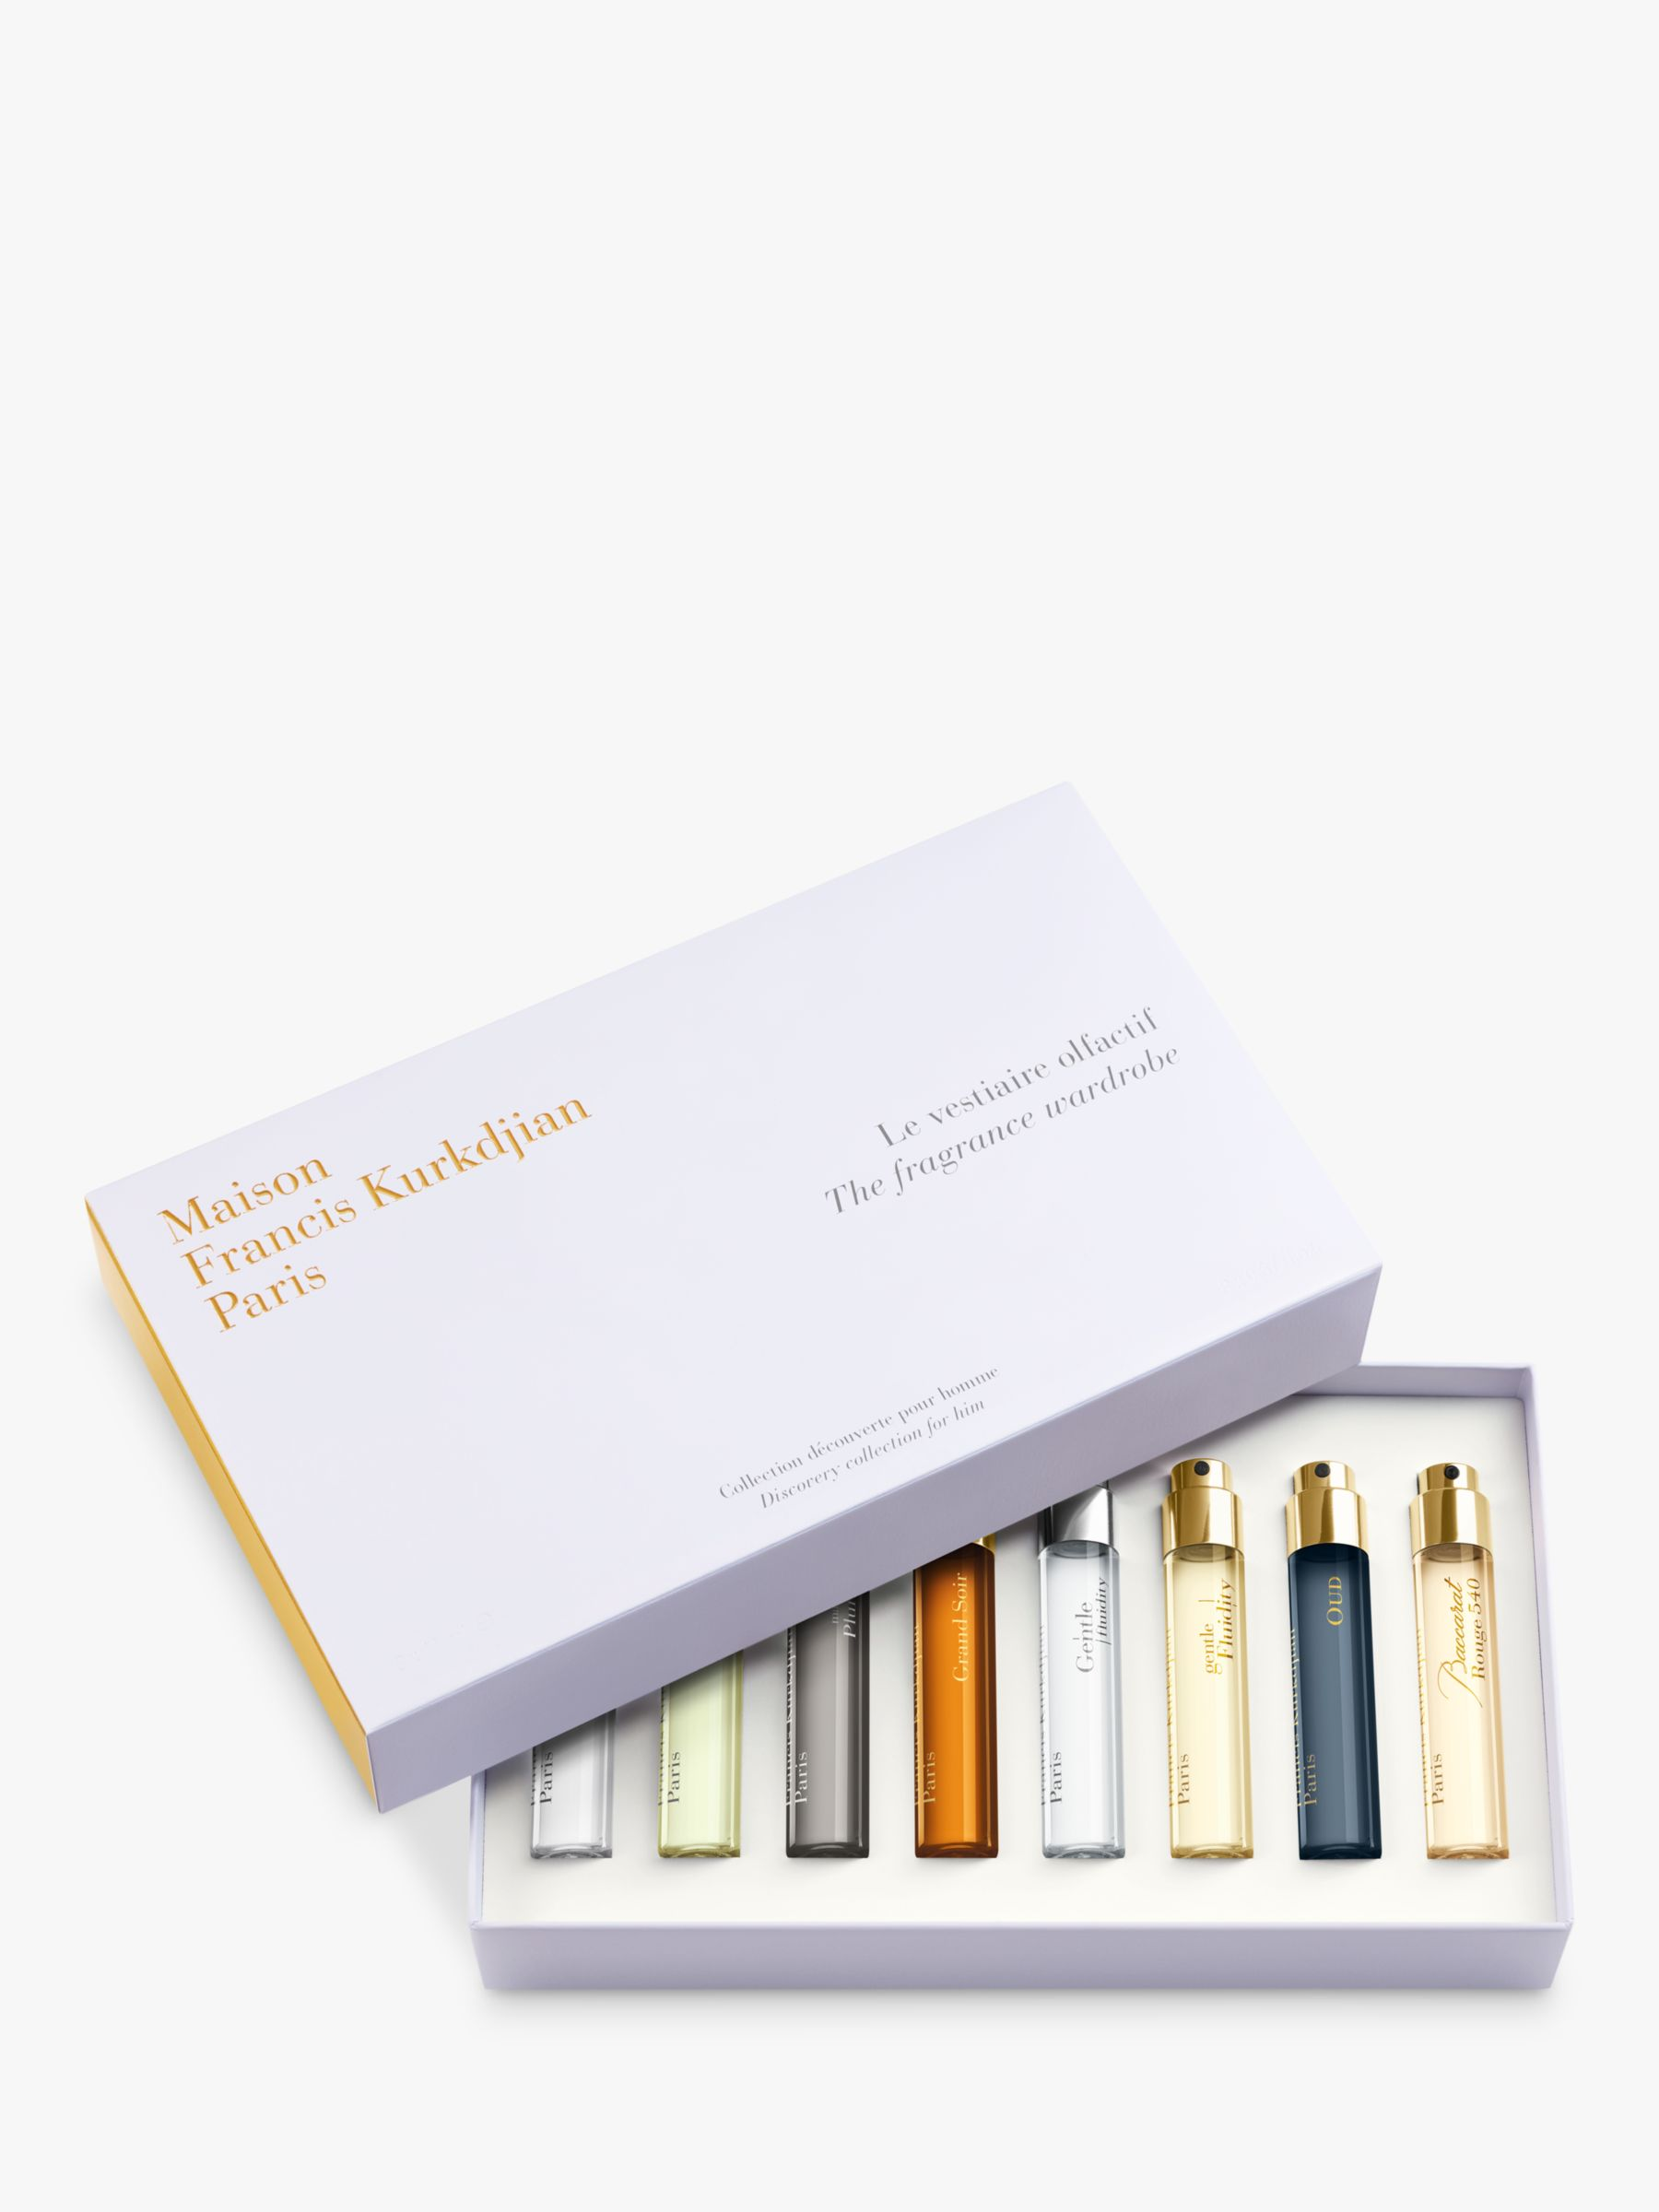 Maison Francis Kurkdjian Maison Francis Kurkdjian The Fragrance Wardrobe Discovery Collection for Him Fragrance Gift Set